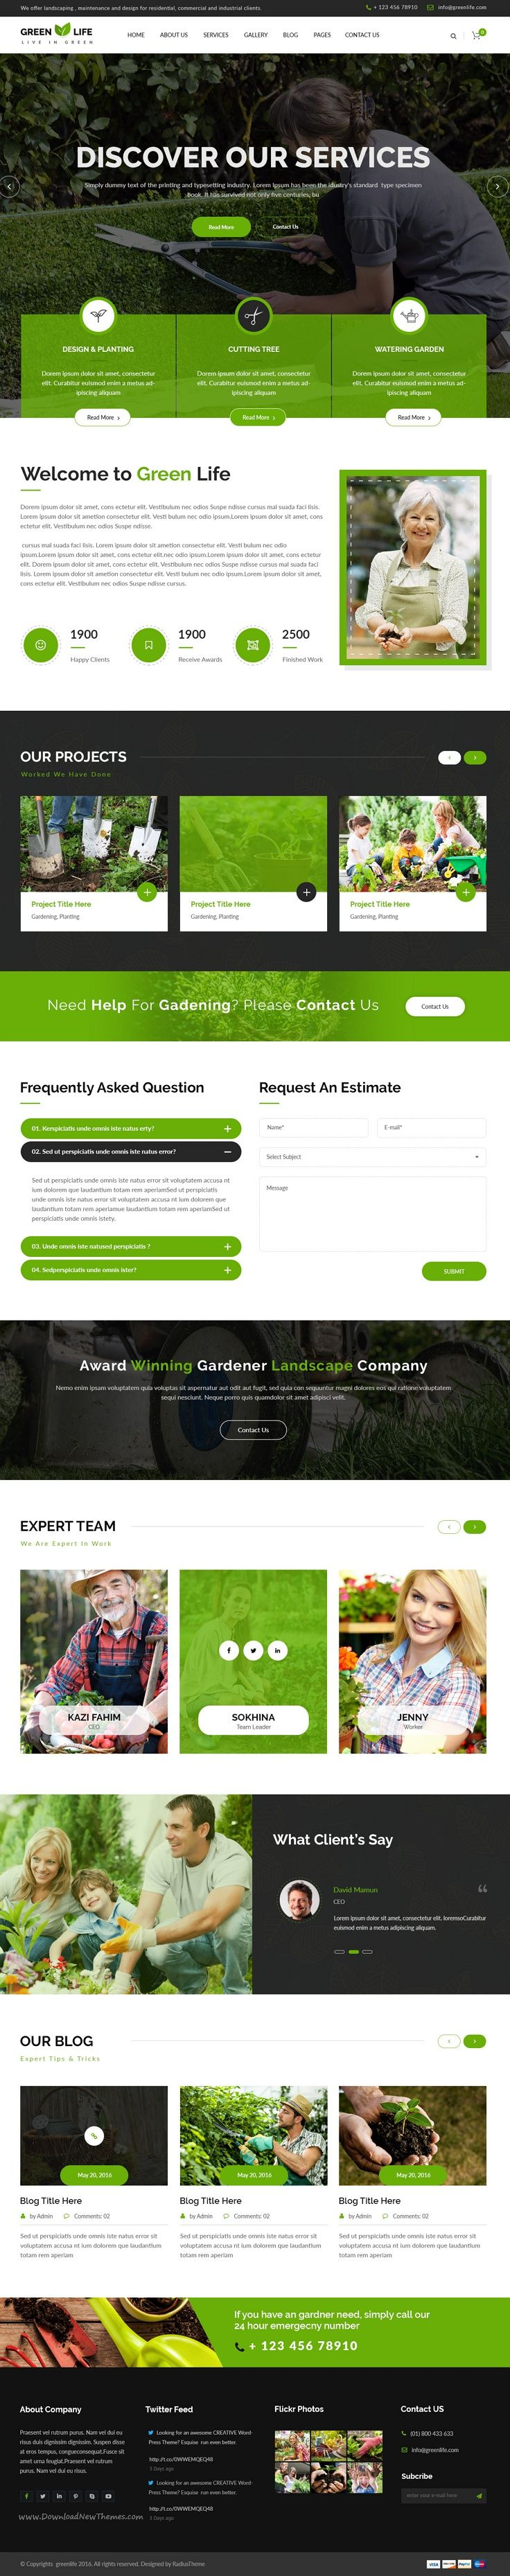 best images about lawn care company custom greenlife gardening and landscaping psd template